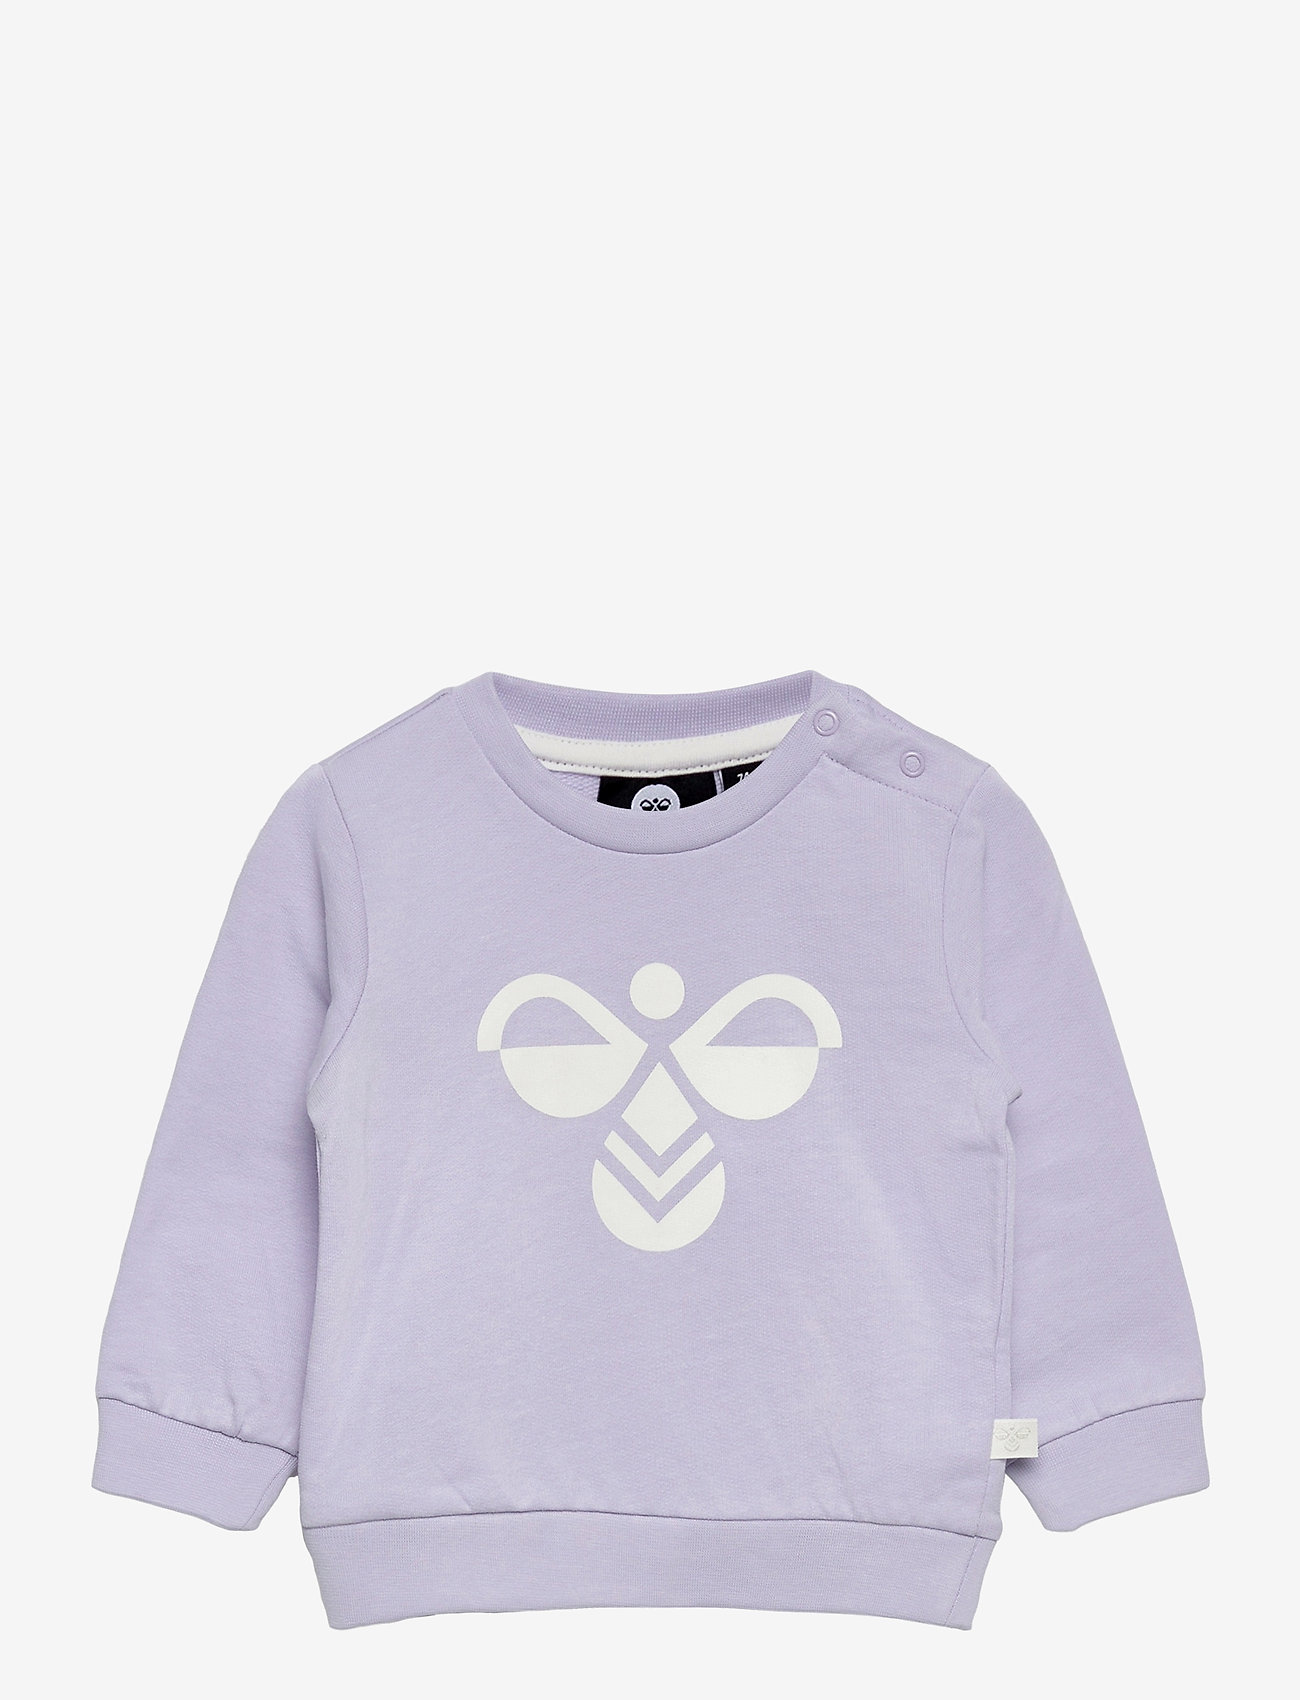 Hummel - hmlLEMON SWEATSHIRT - sweatshirts - purple heather - 0